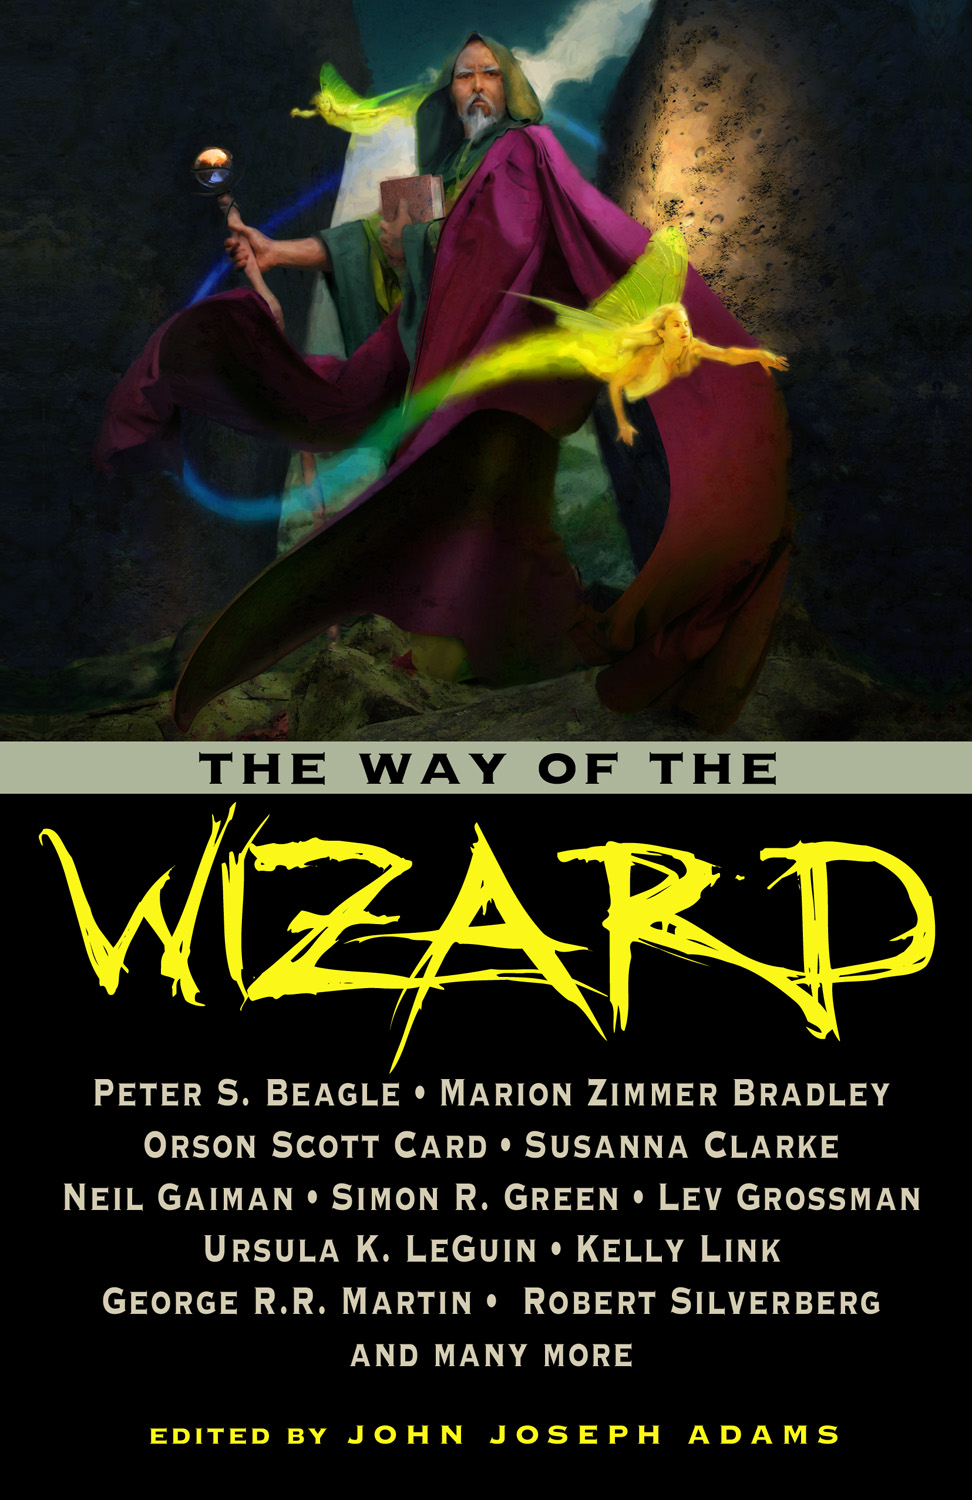 The Way of the Wizar...